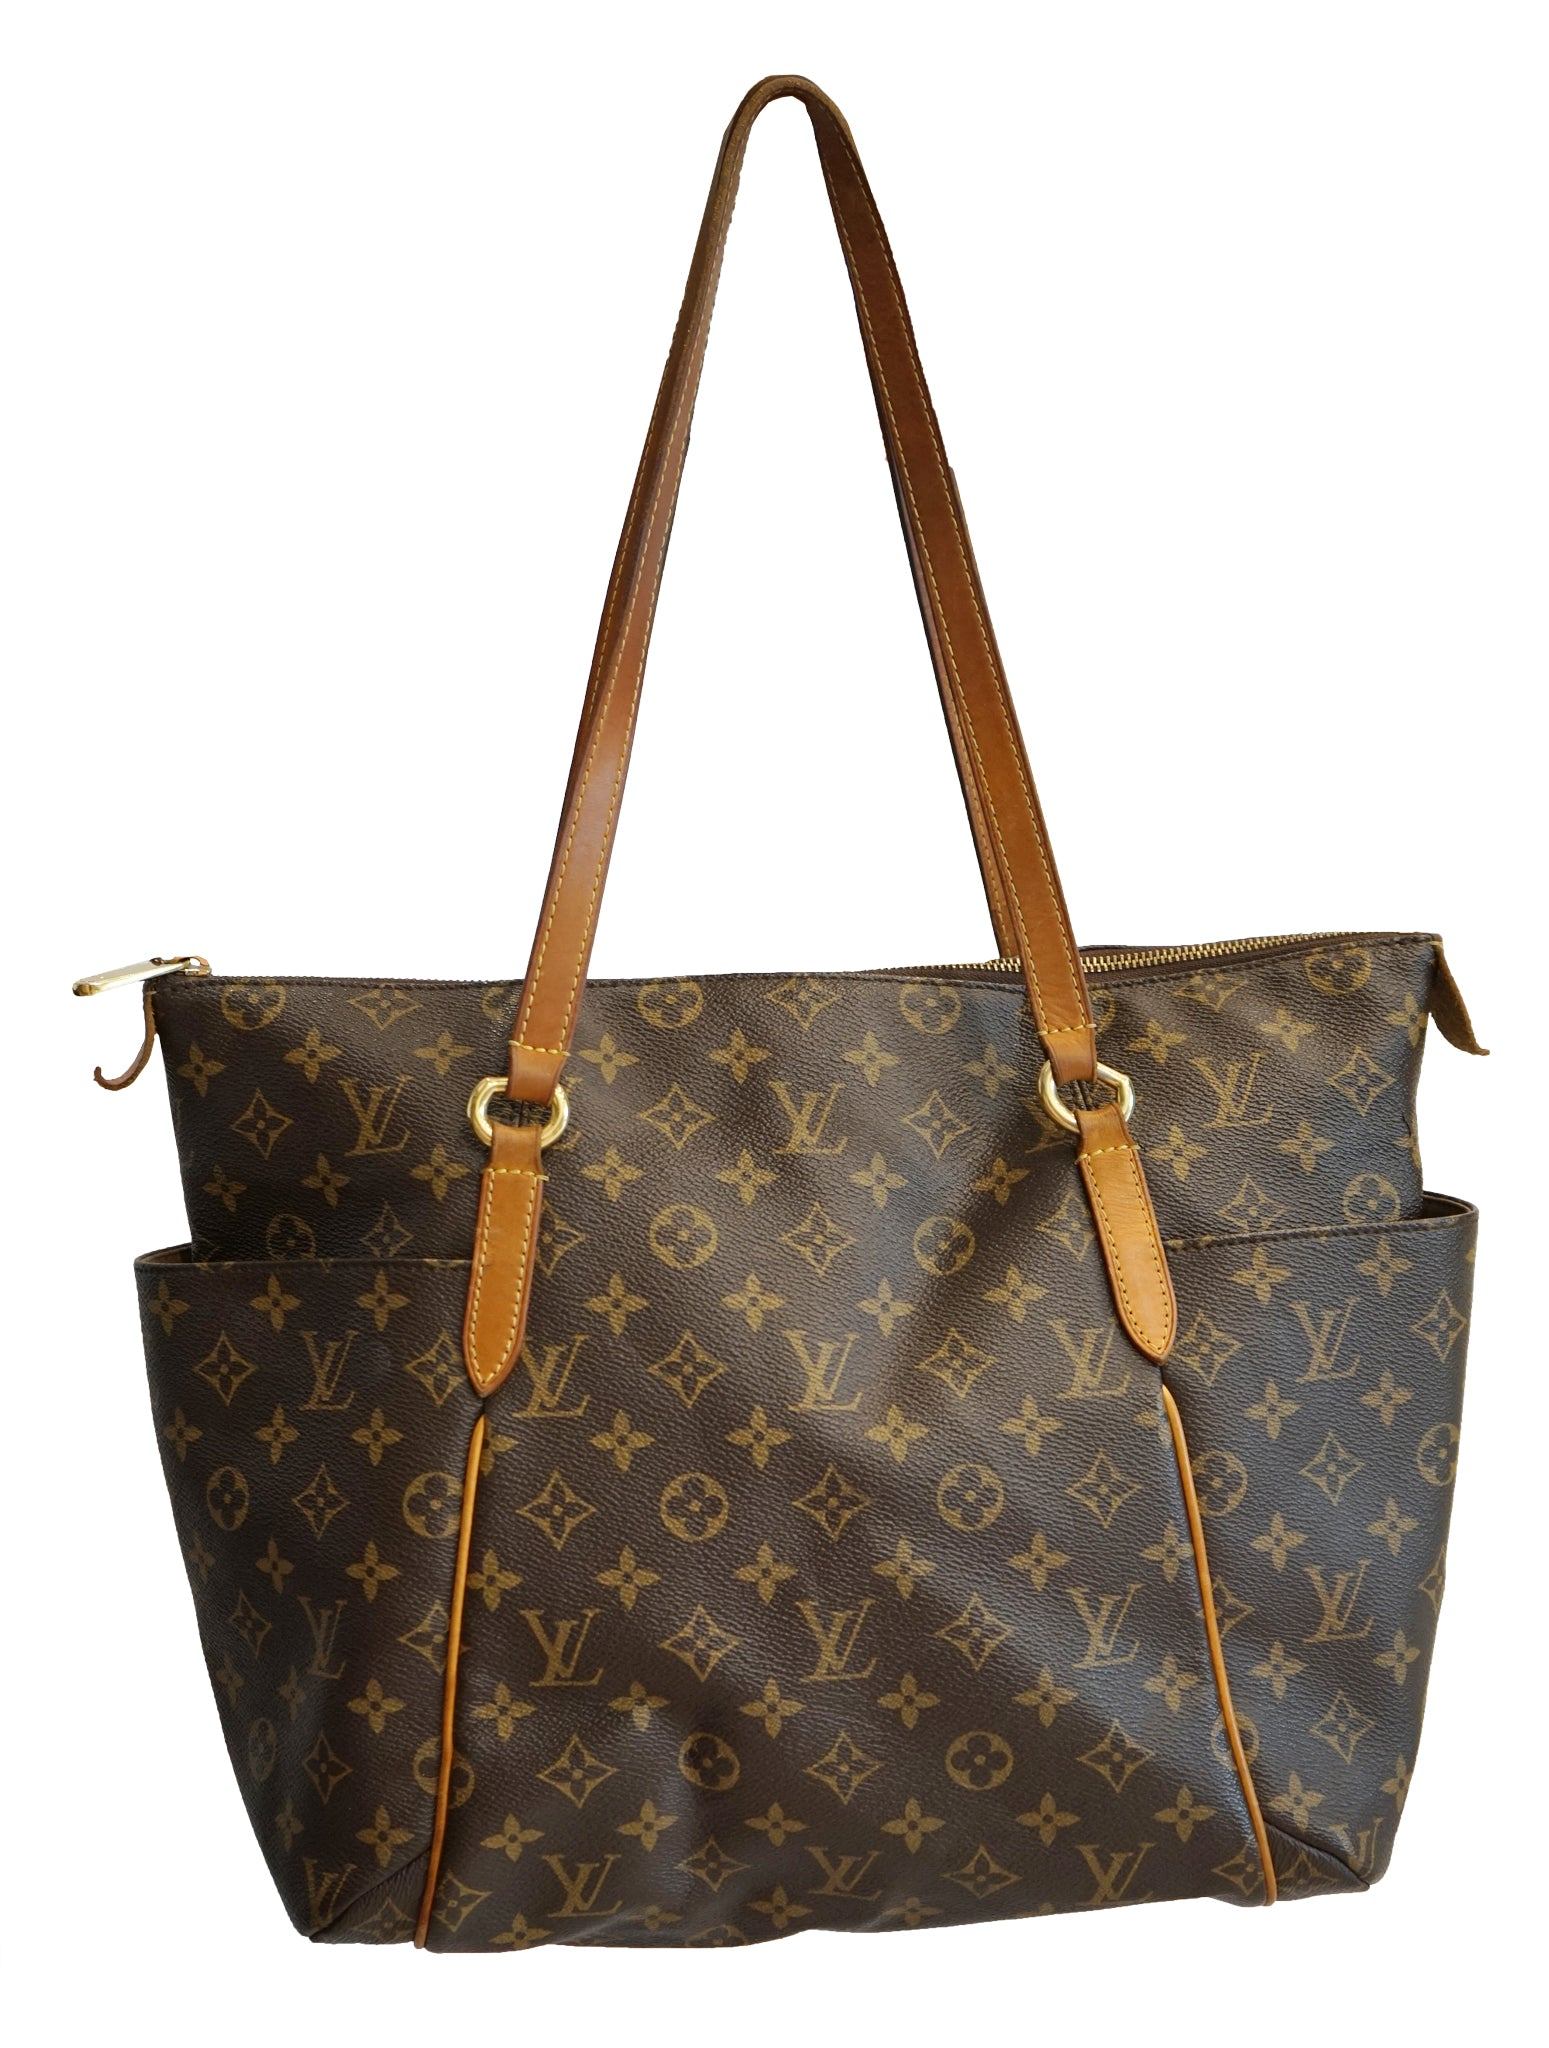 MONOGRAM CANVAS TOTALLY MM BAG